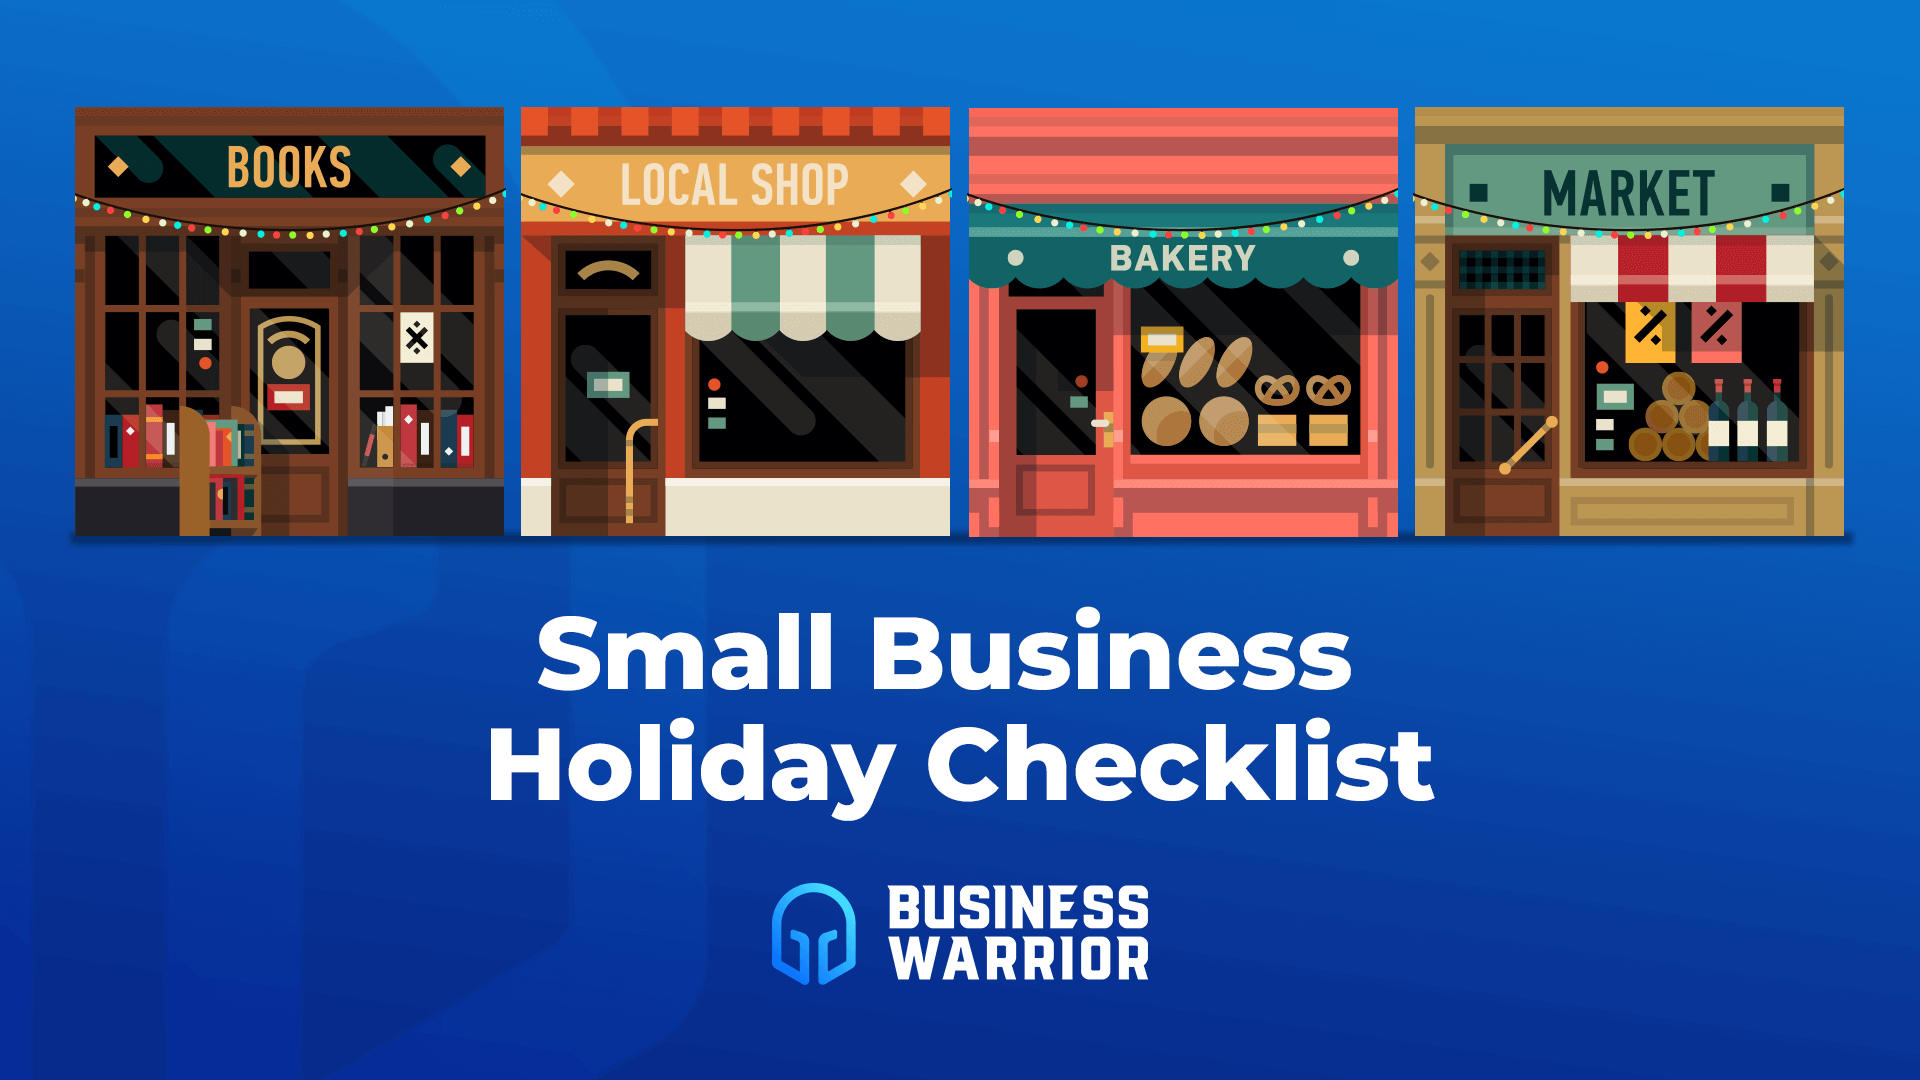 Blog Title: Small Business Holiday Checklist